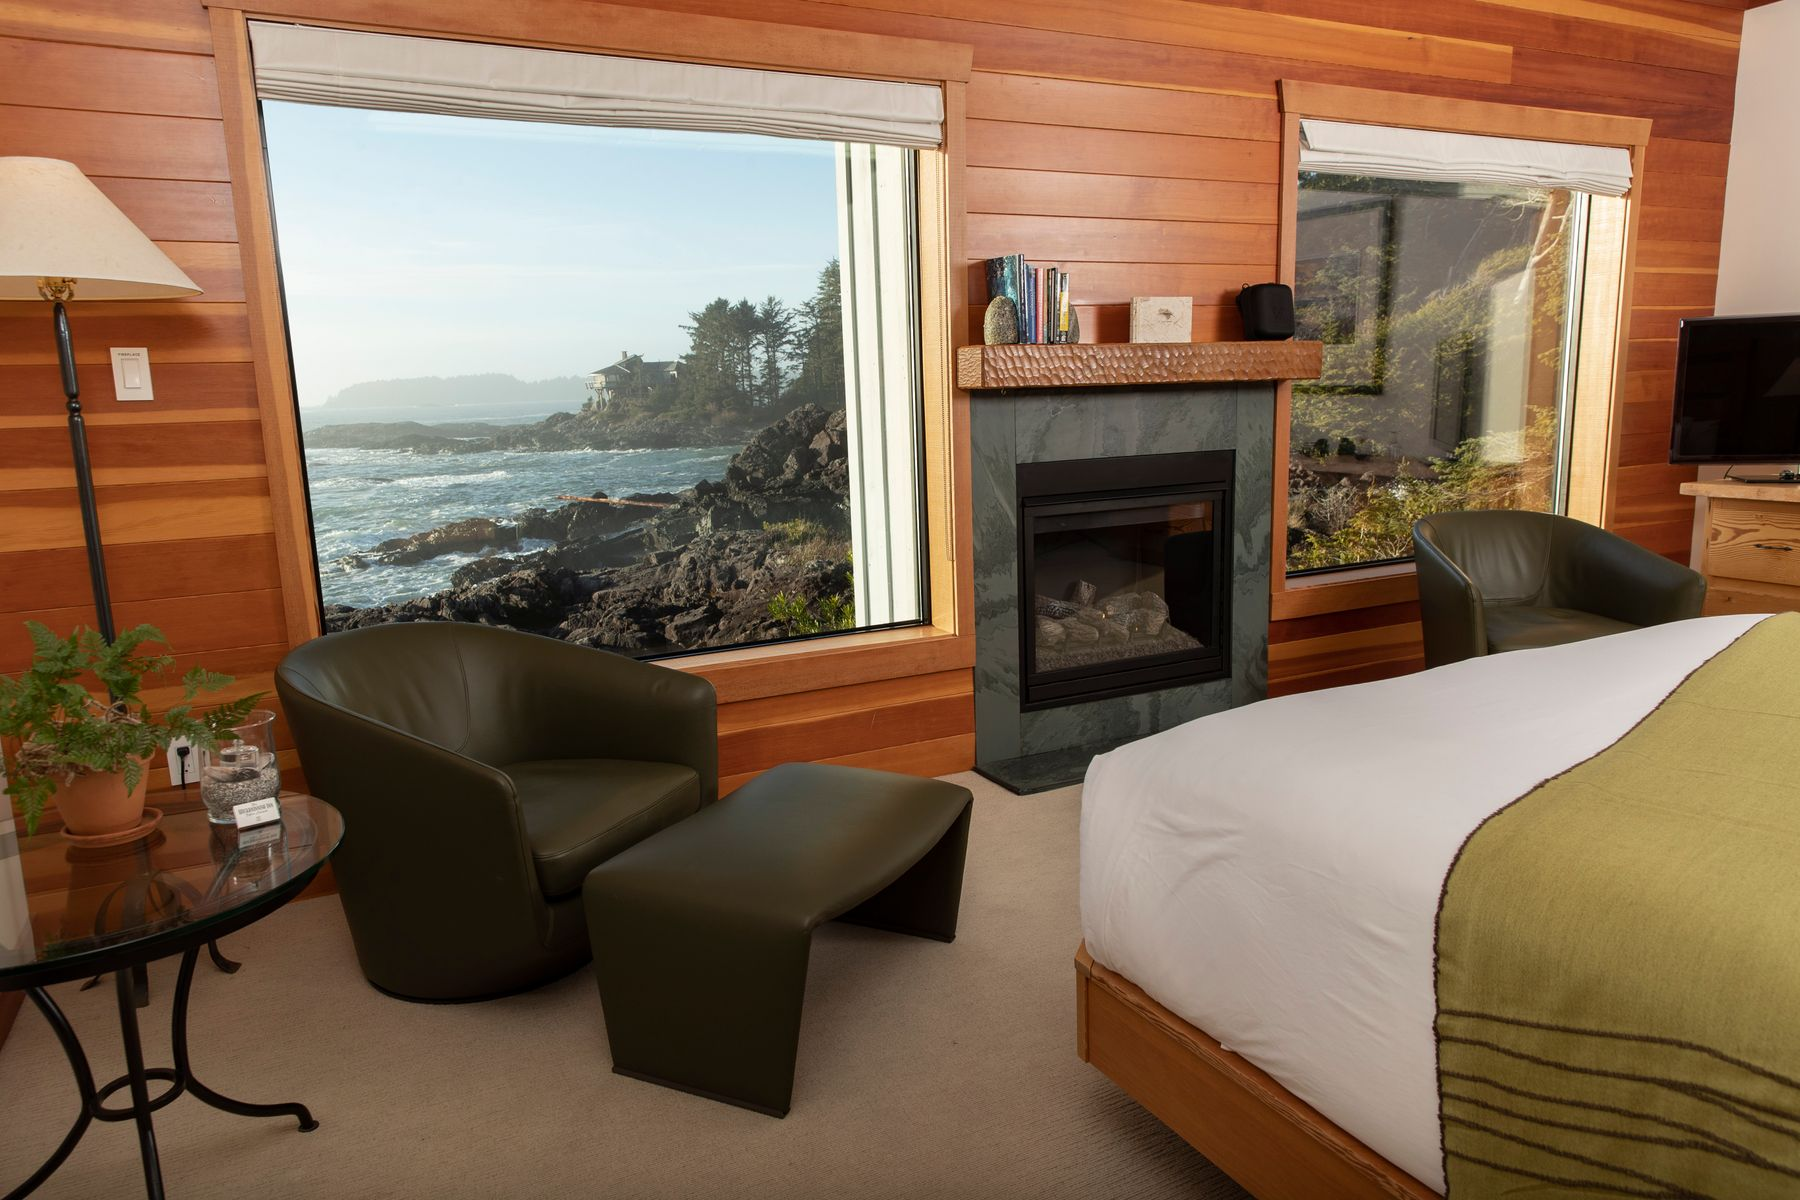 Image of Premier Room in Wickaninnish Inn hotel, a top green hotel in Canada. Hotel bed is made with a green and white blanket on top. Fireplace, table and chair, and view of the Pacific Ccean through the window.